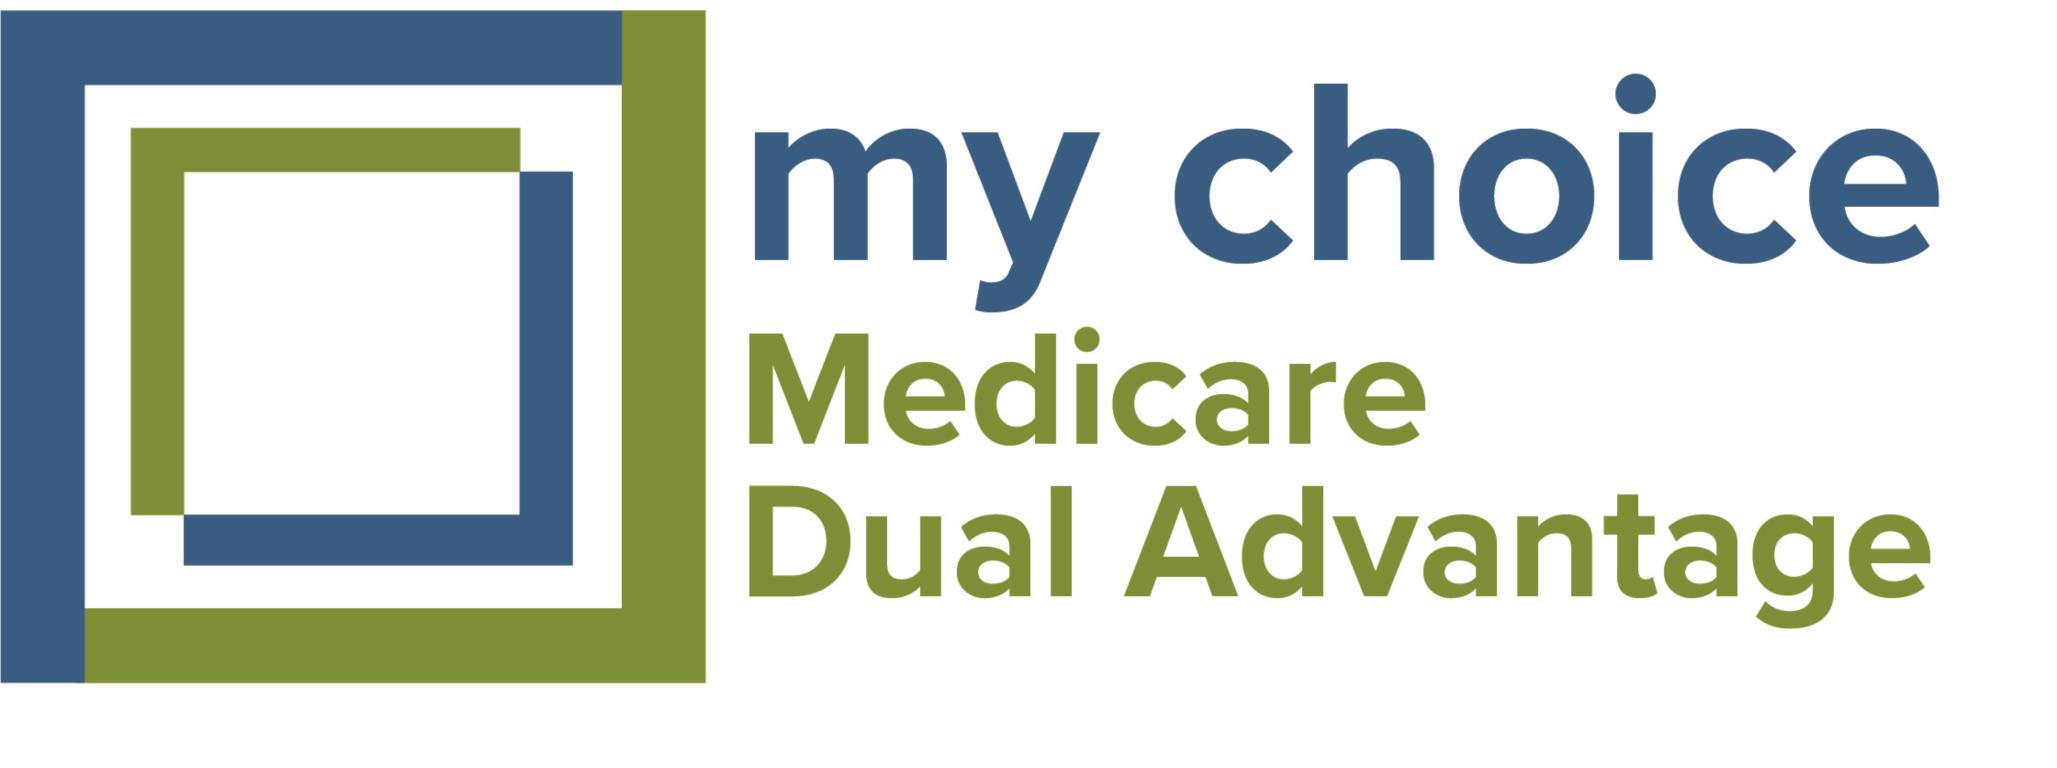 My Choice Medicare Dual Advantage